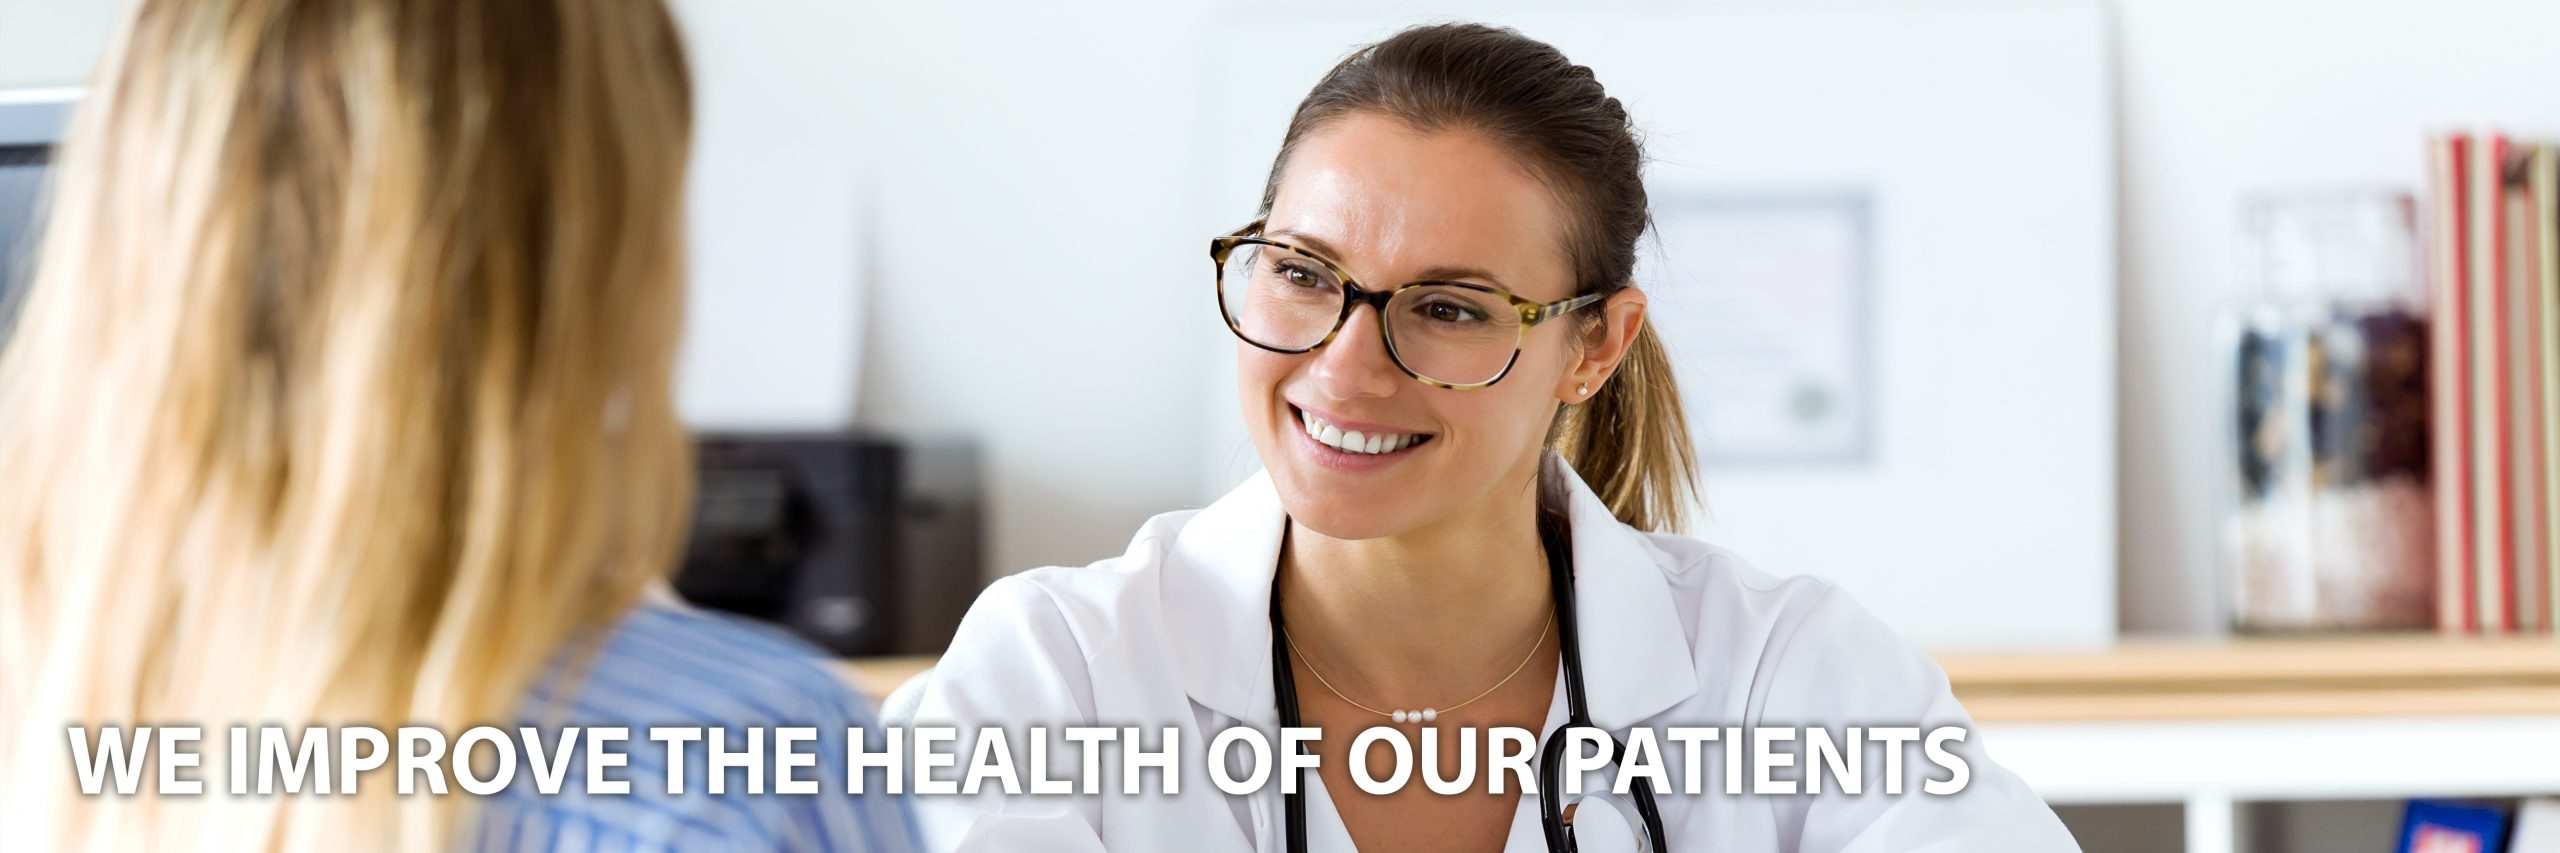 We improve the health of our patients